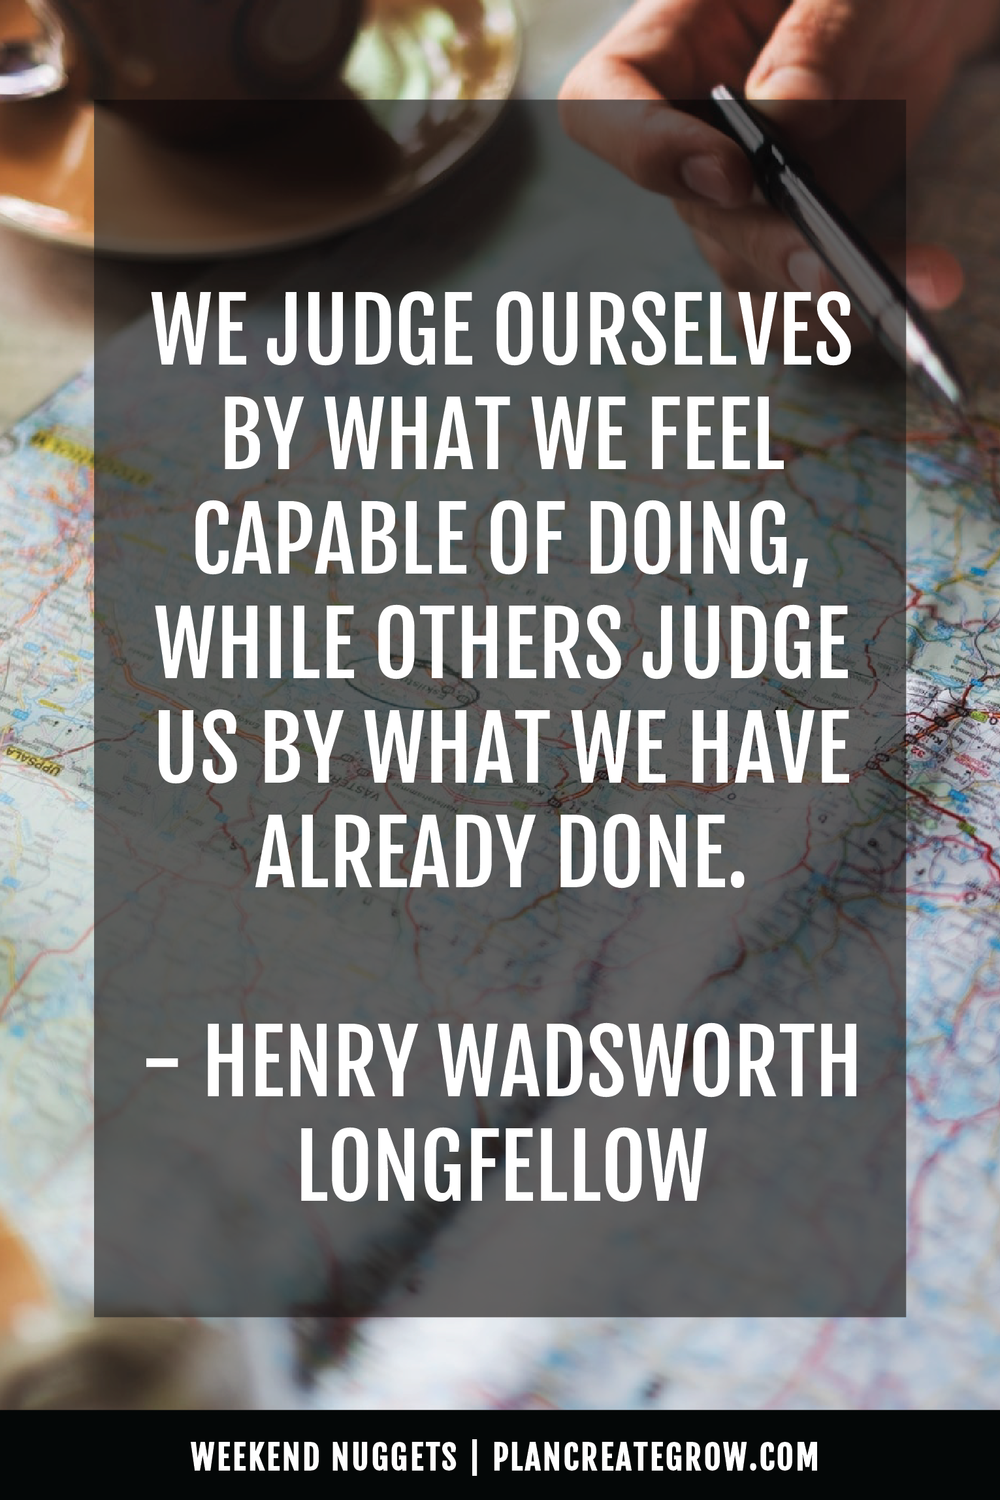 """We judge ourselves by what we feel capable of doing, while others judge us by what we have already done."" - Henry Wadsworth Longfellow  This image forms part of a series called Weekend Nuggets - a collection of quotes and ideas curated to delight and inspire - shared each weekend. For more, visit plancreategrow.com/weekend-nuggets."